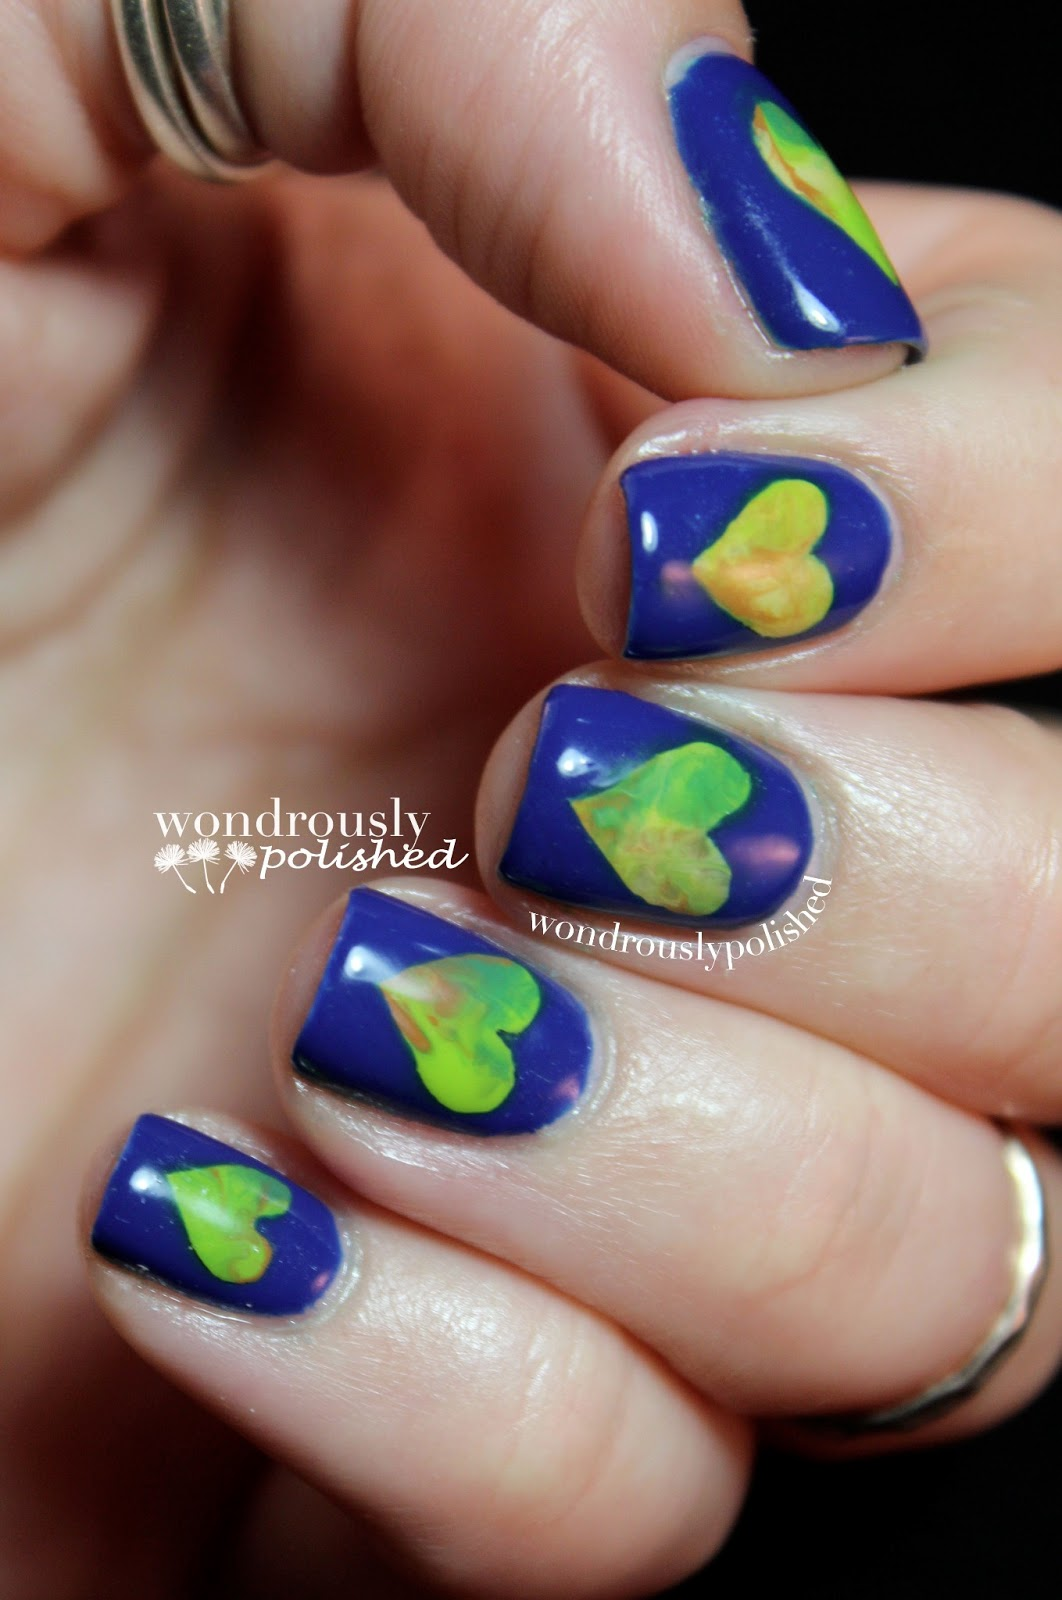 Wondrously Polished February Nail Art Challenge: Wondrously Polished: Earth Day